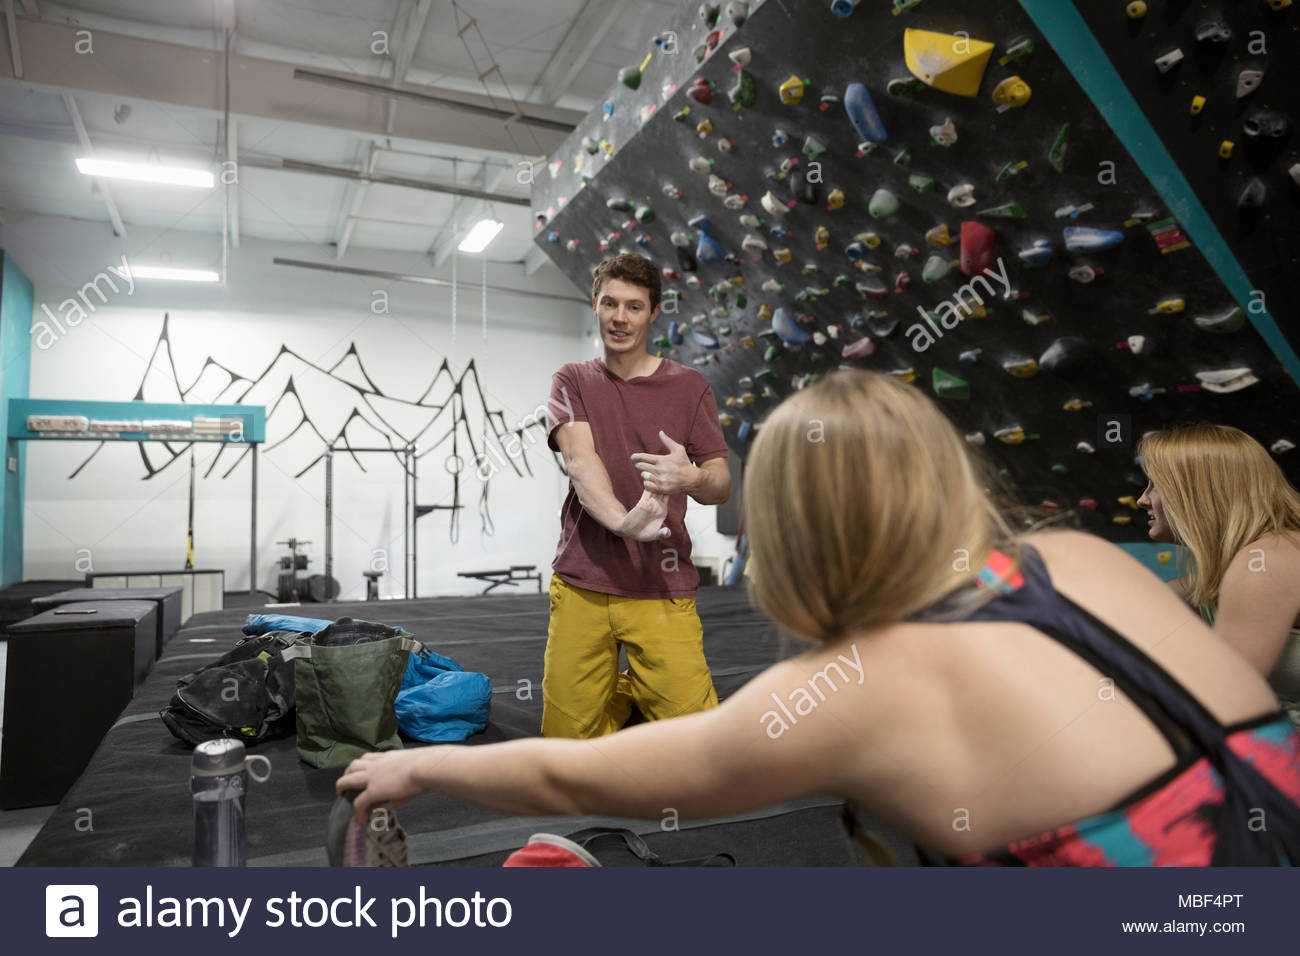 Rock climbers stretching hands and legs at climbing gym - Stock Image